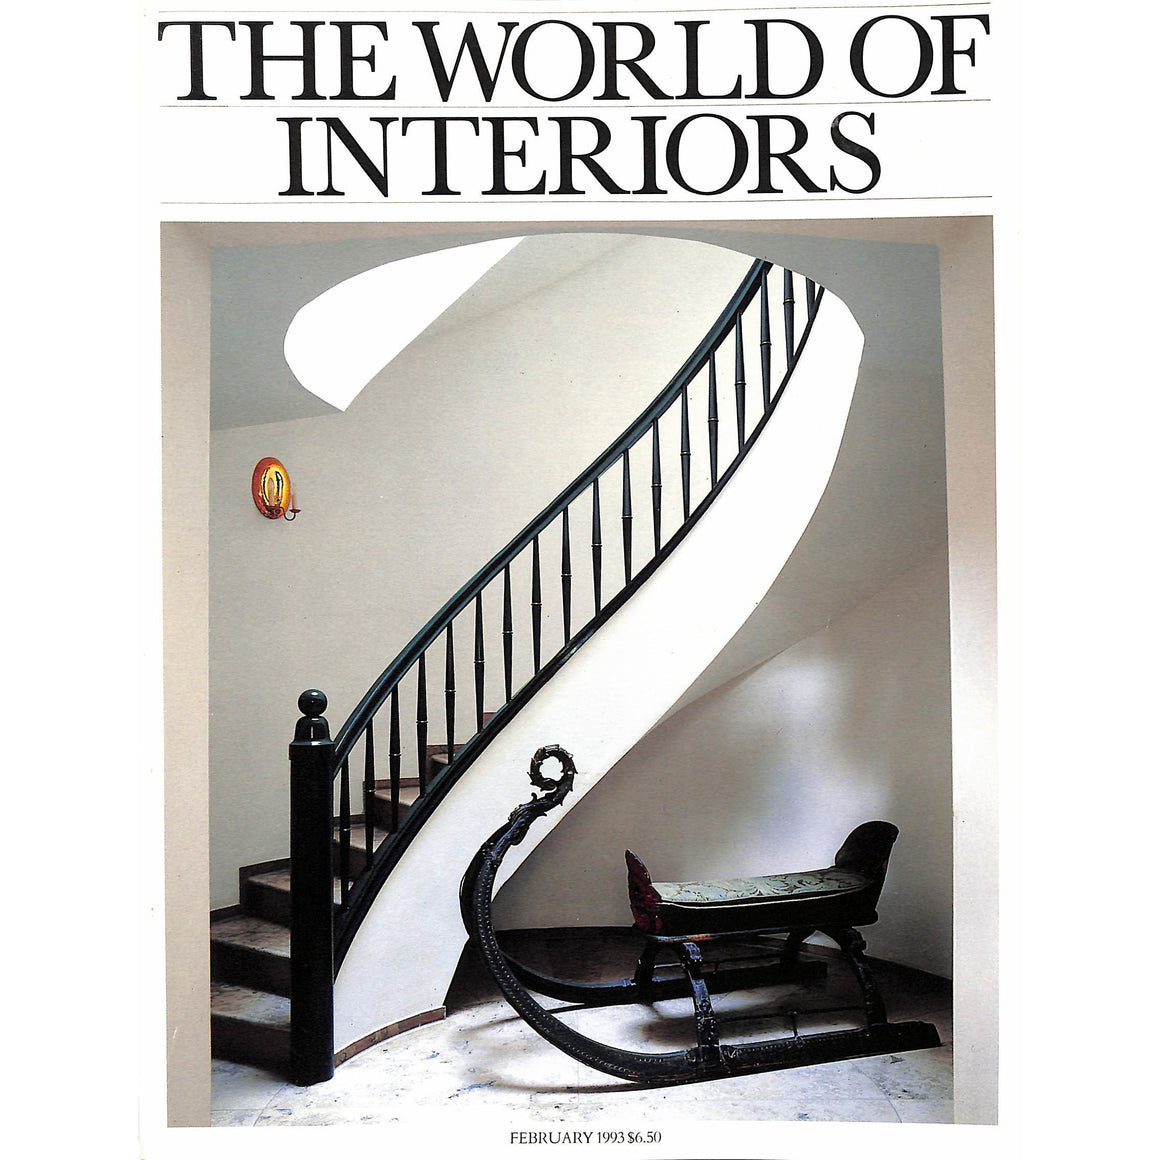 The World of Interiors February 1993 (SOLD!)